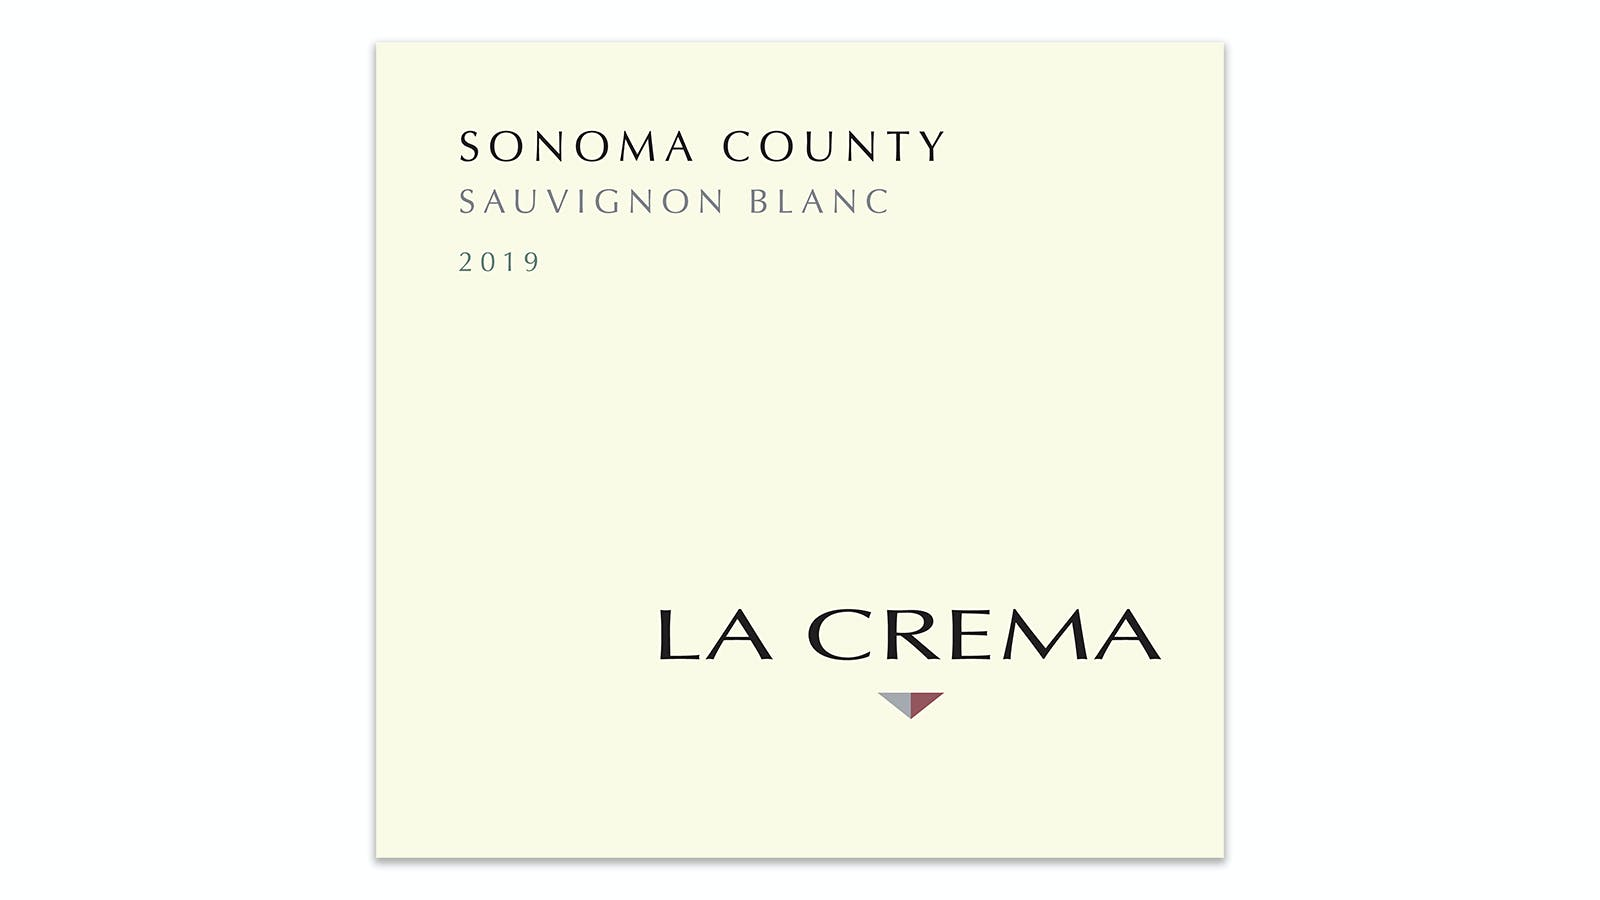 Wine of the Week for April 26, 2021